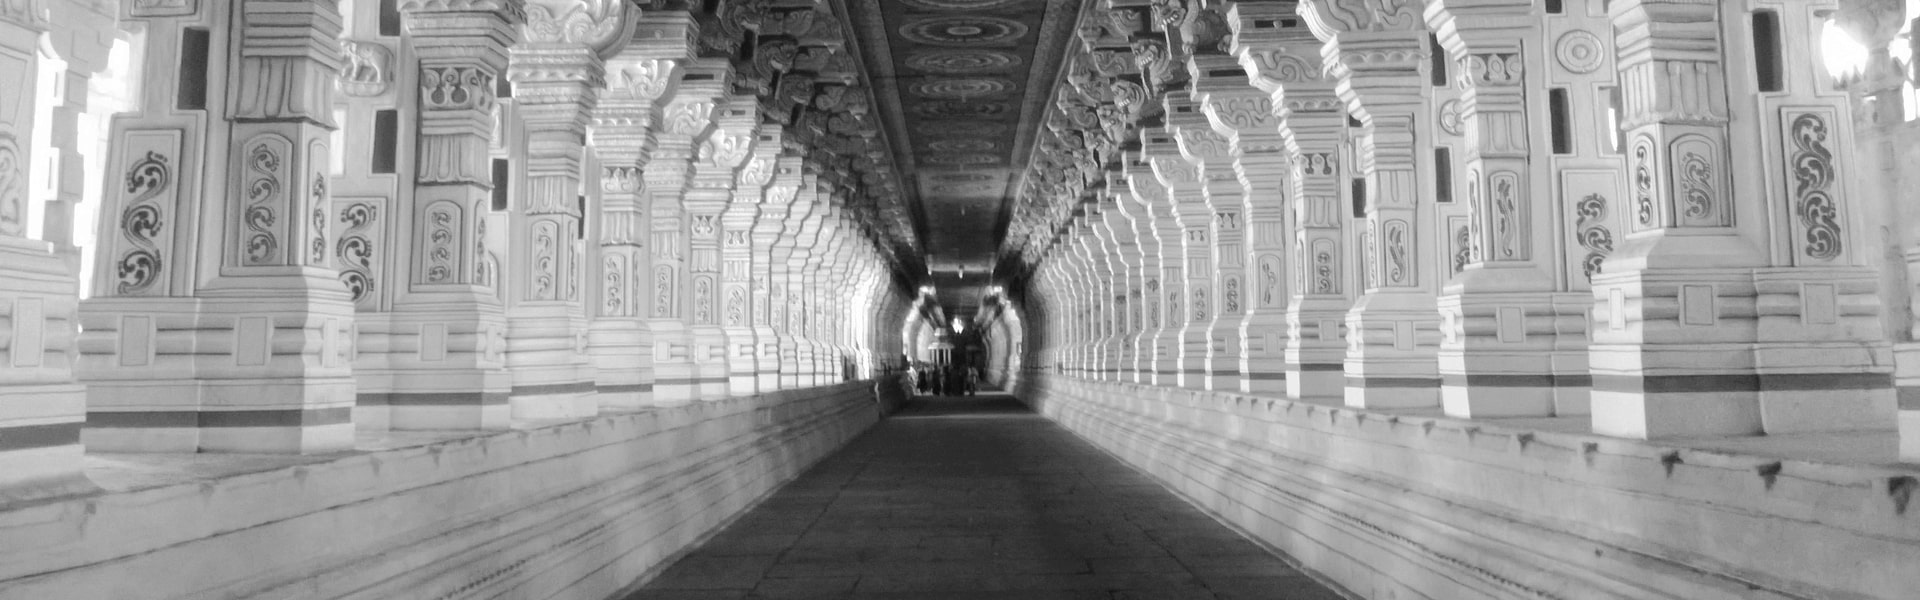 1000 pillar temple rameswaram blackandwhite